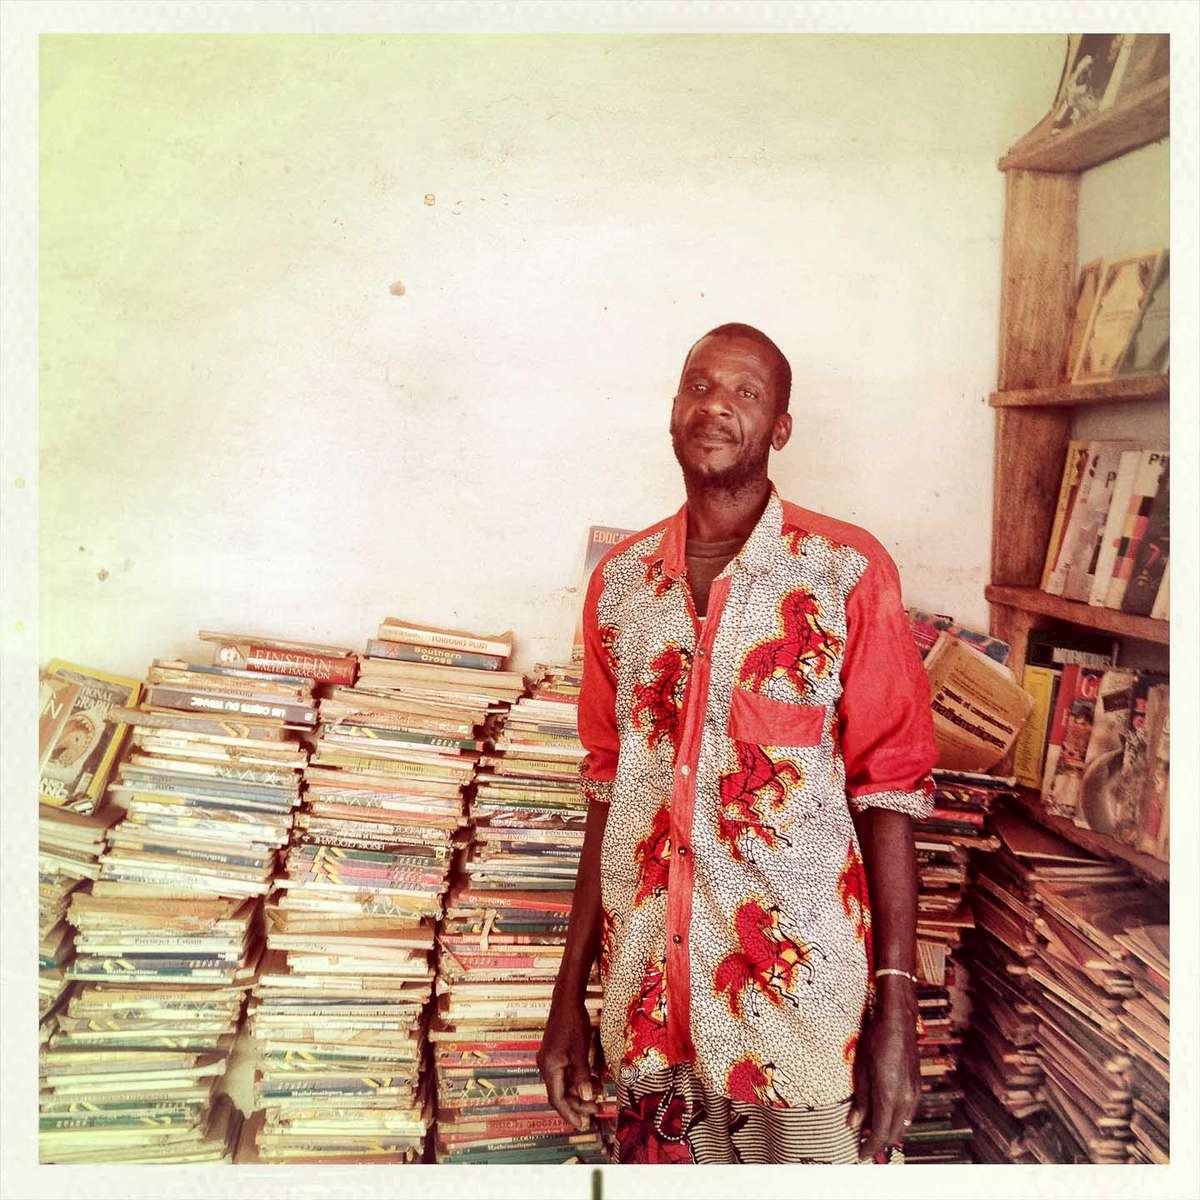 A bookseller in Bamako, Mali. January 2013.